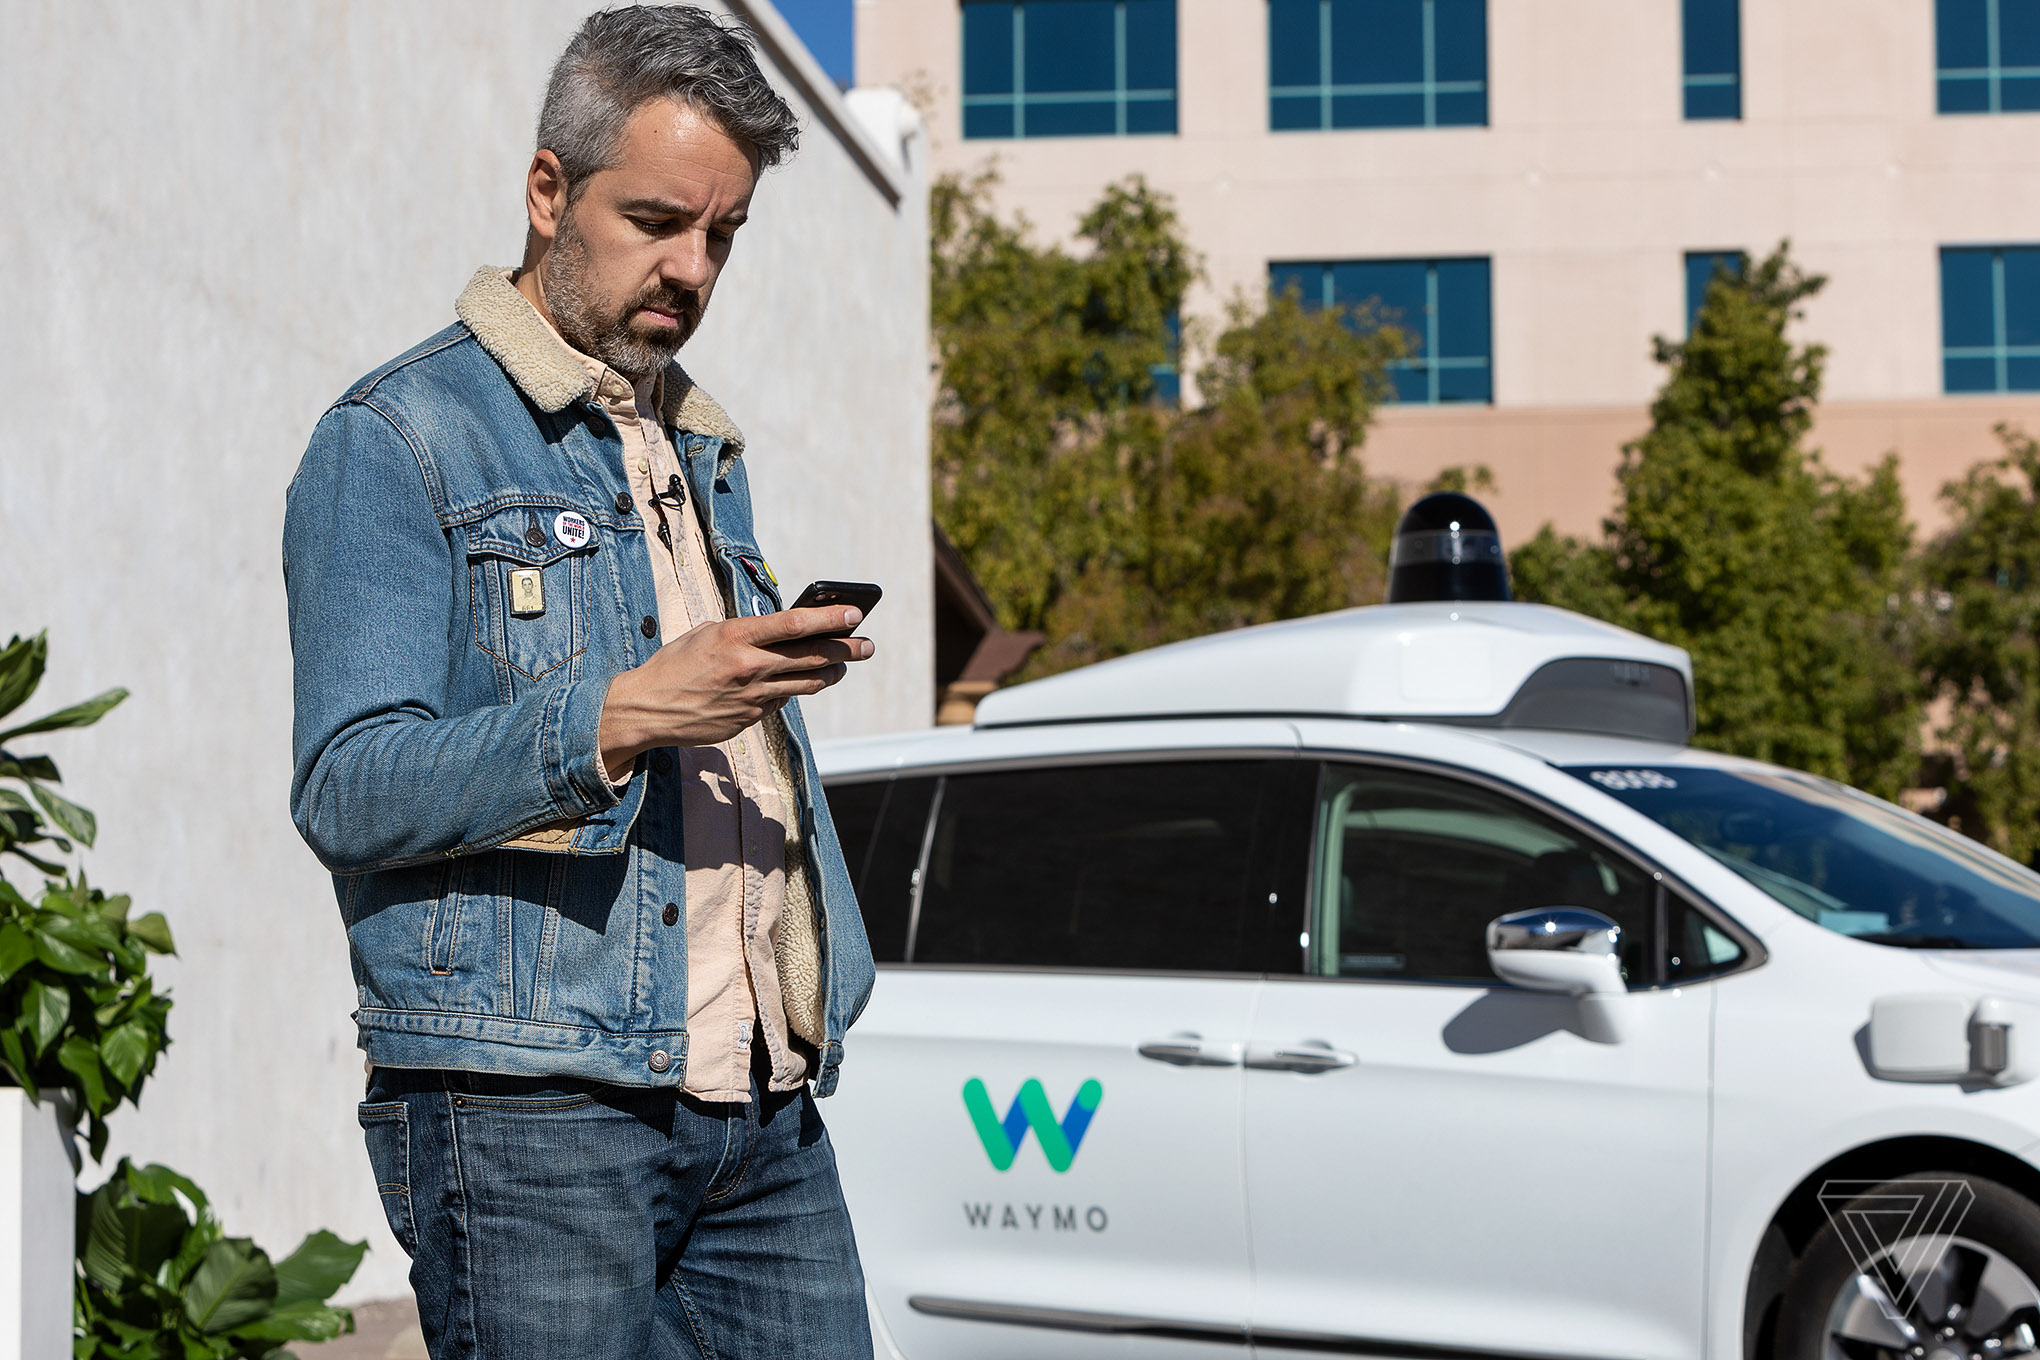 Riding in Waymo One, the Google spinoff's first self-driving